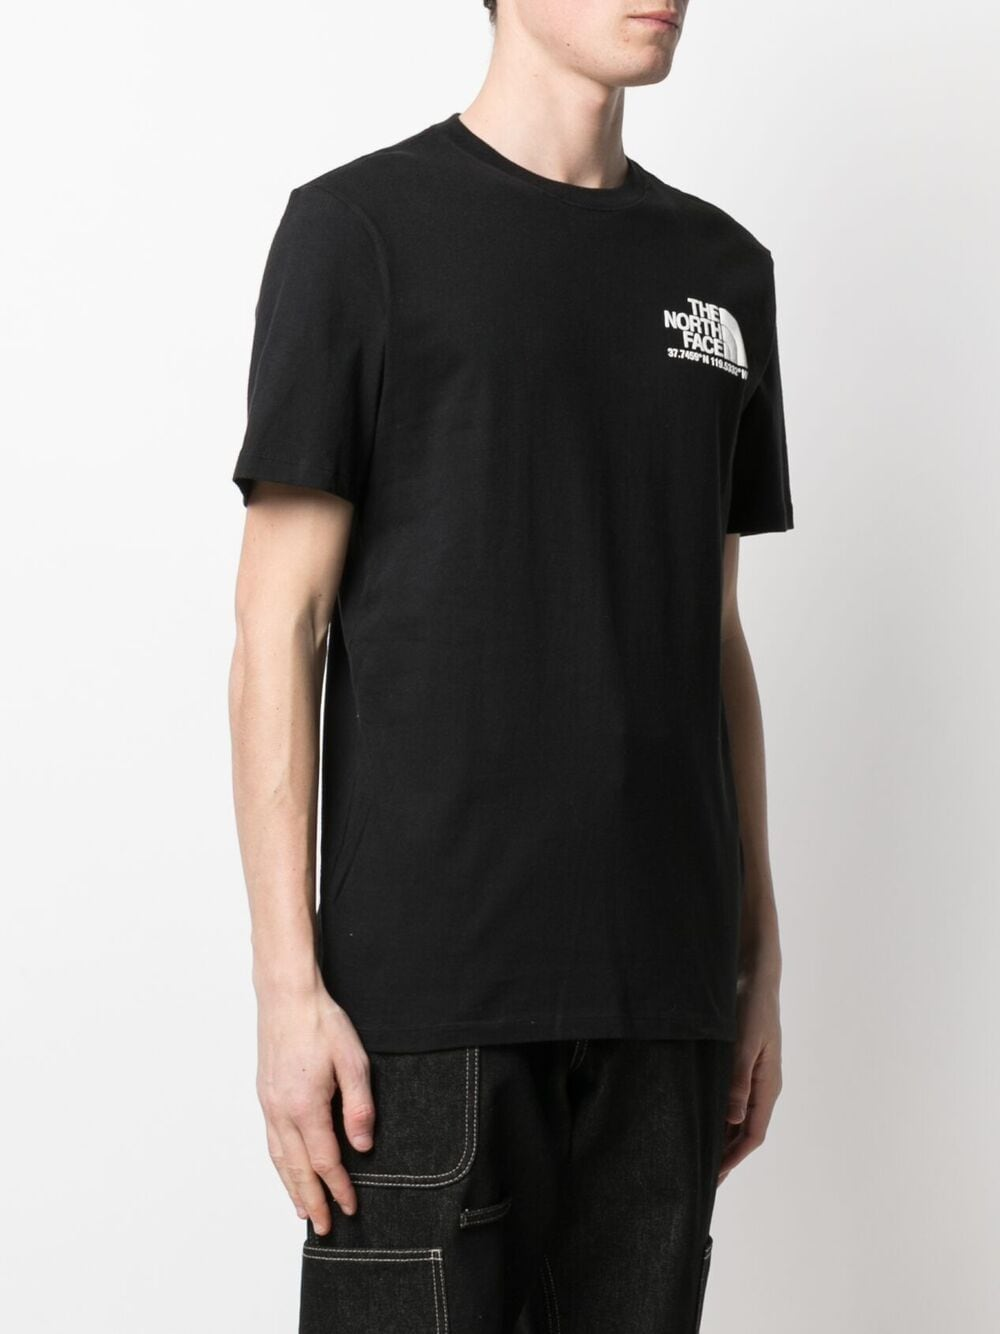 LOGO T-SHIRT THE NORTH FACE | T-shirts | NF0A52Y8JK31